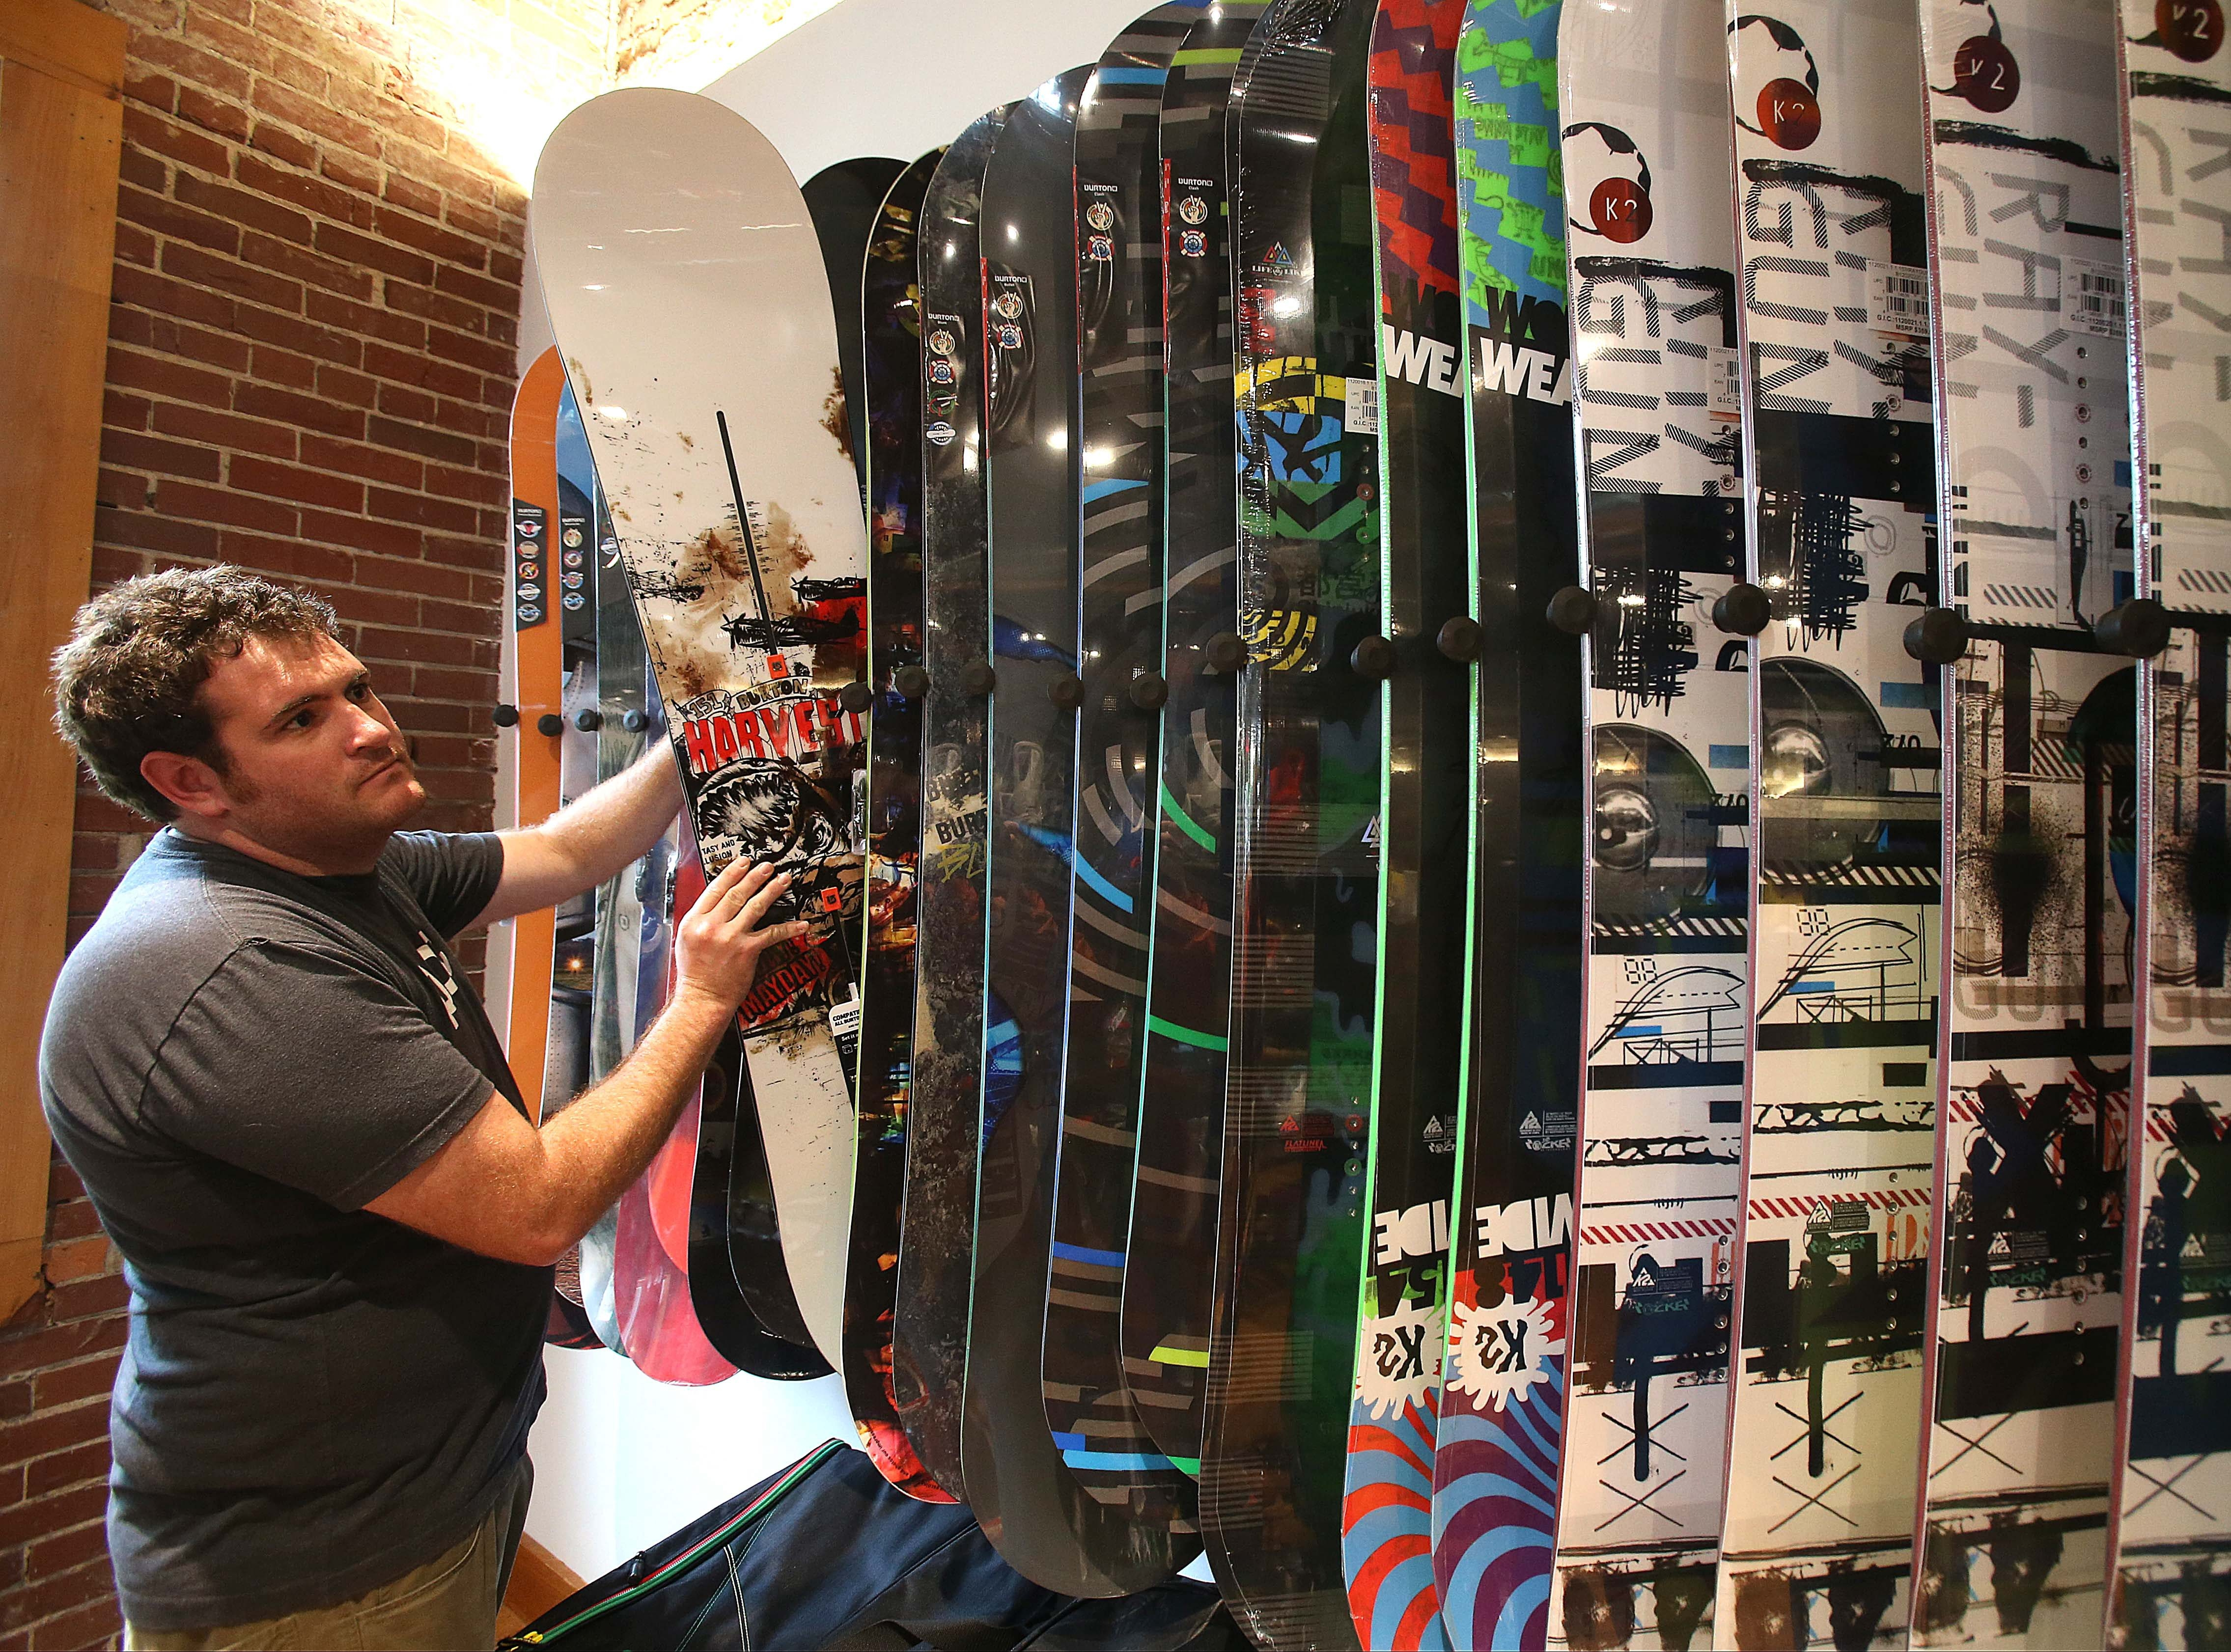 Robert Kirkham/Buffalo News  Nick Sciara, a boot fitter and salesman at Mud Sweat Gears in Ellicottville, arranges snowboards at the company's shop.